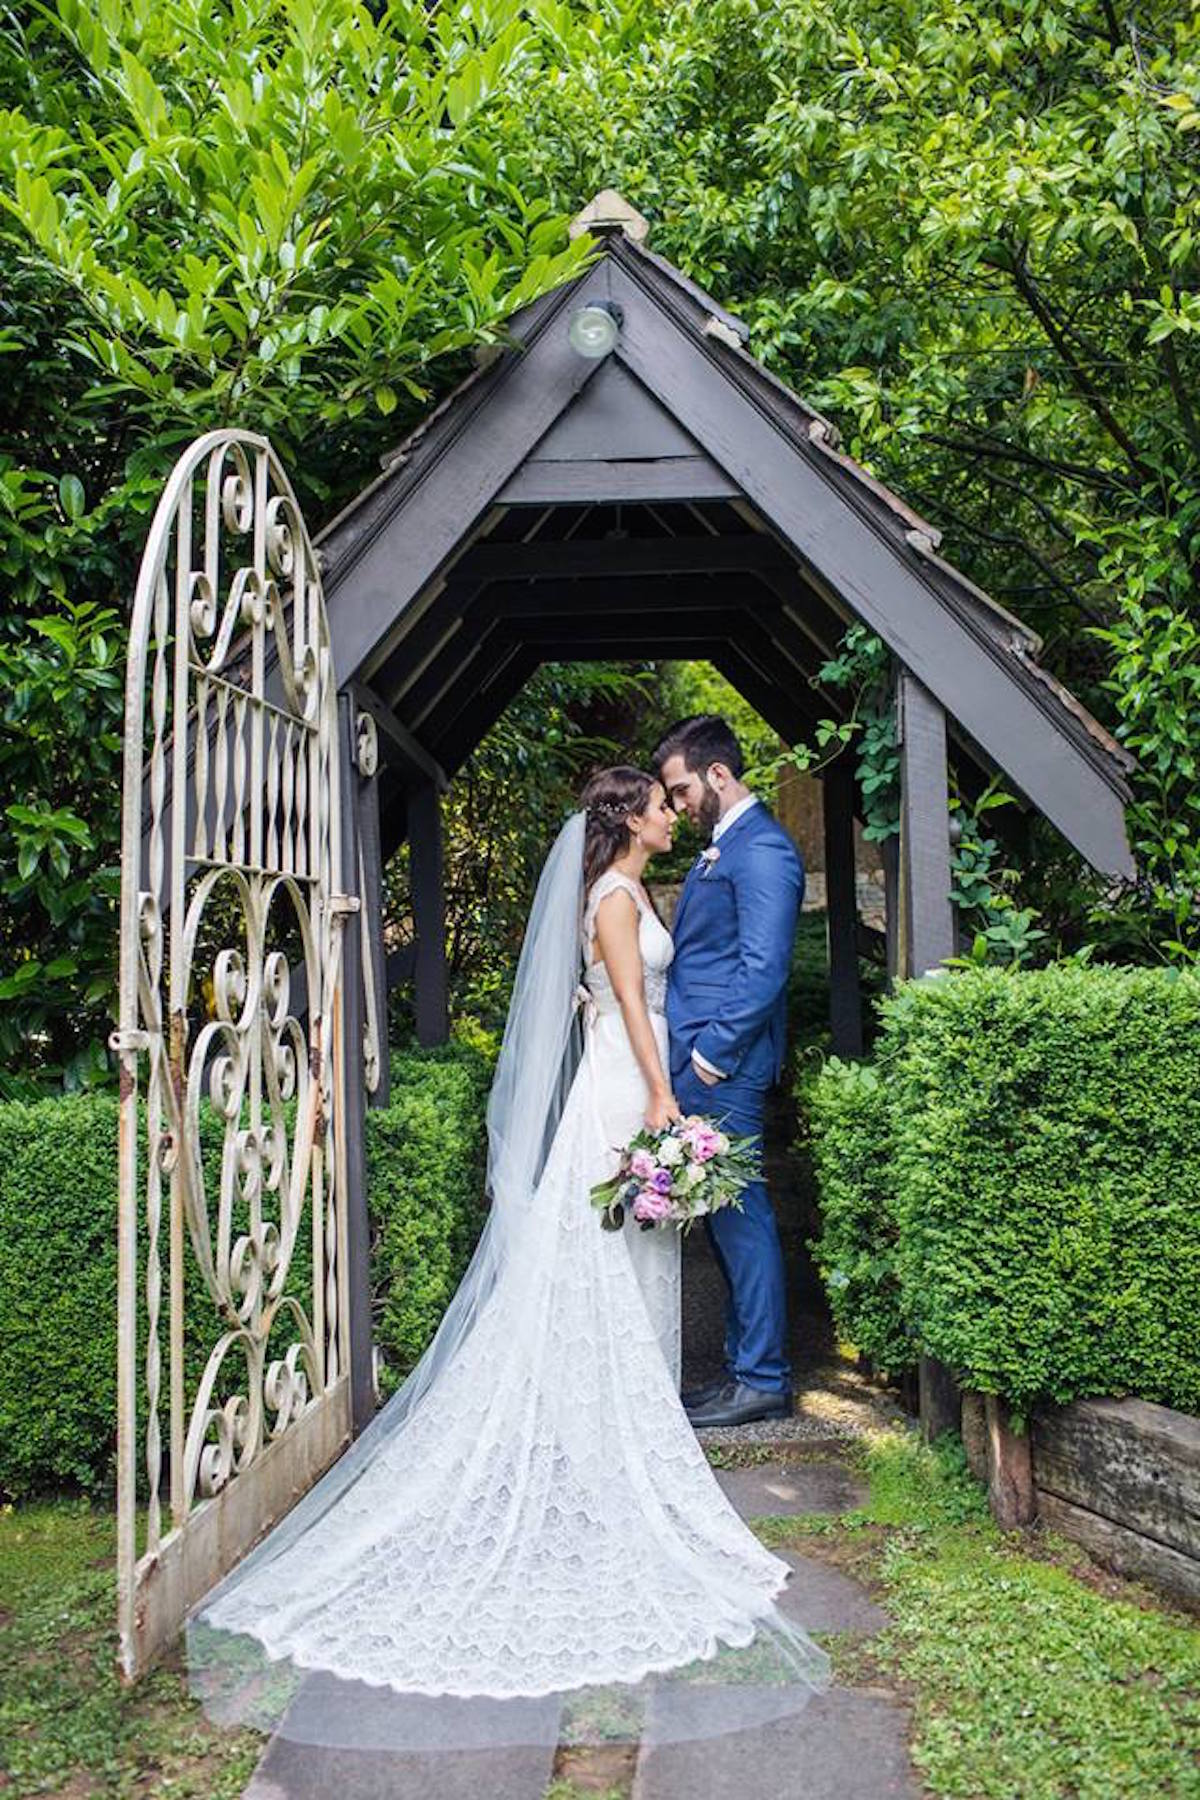 Weddings At Tatra Melbourne S Premier Garden Wedding Location